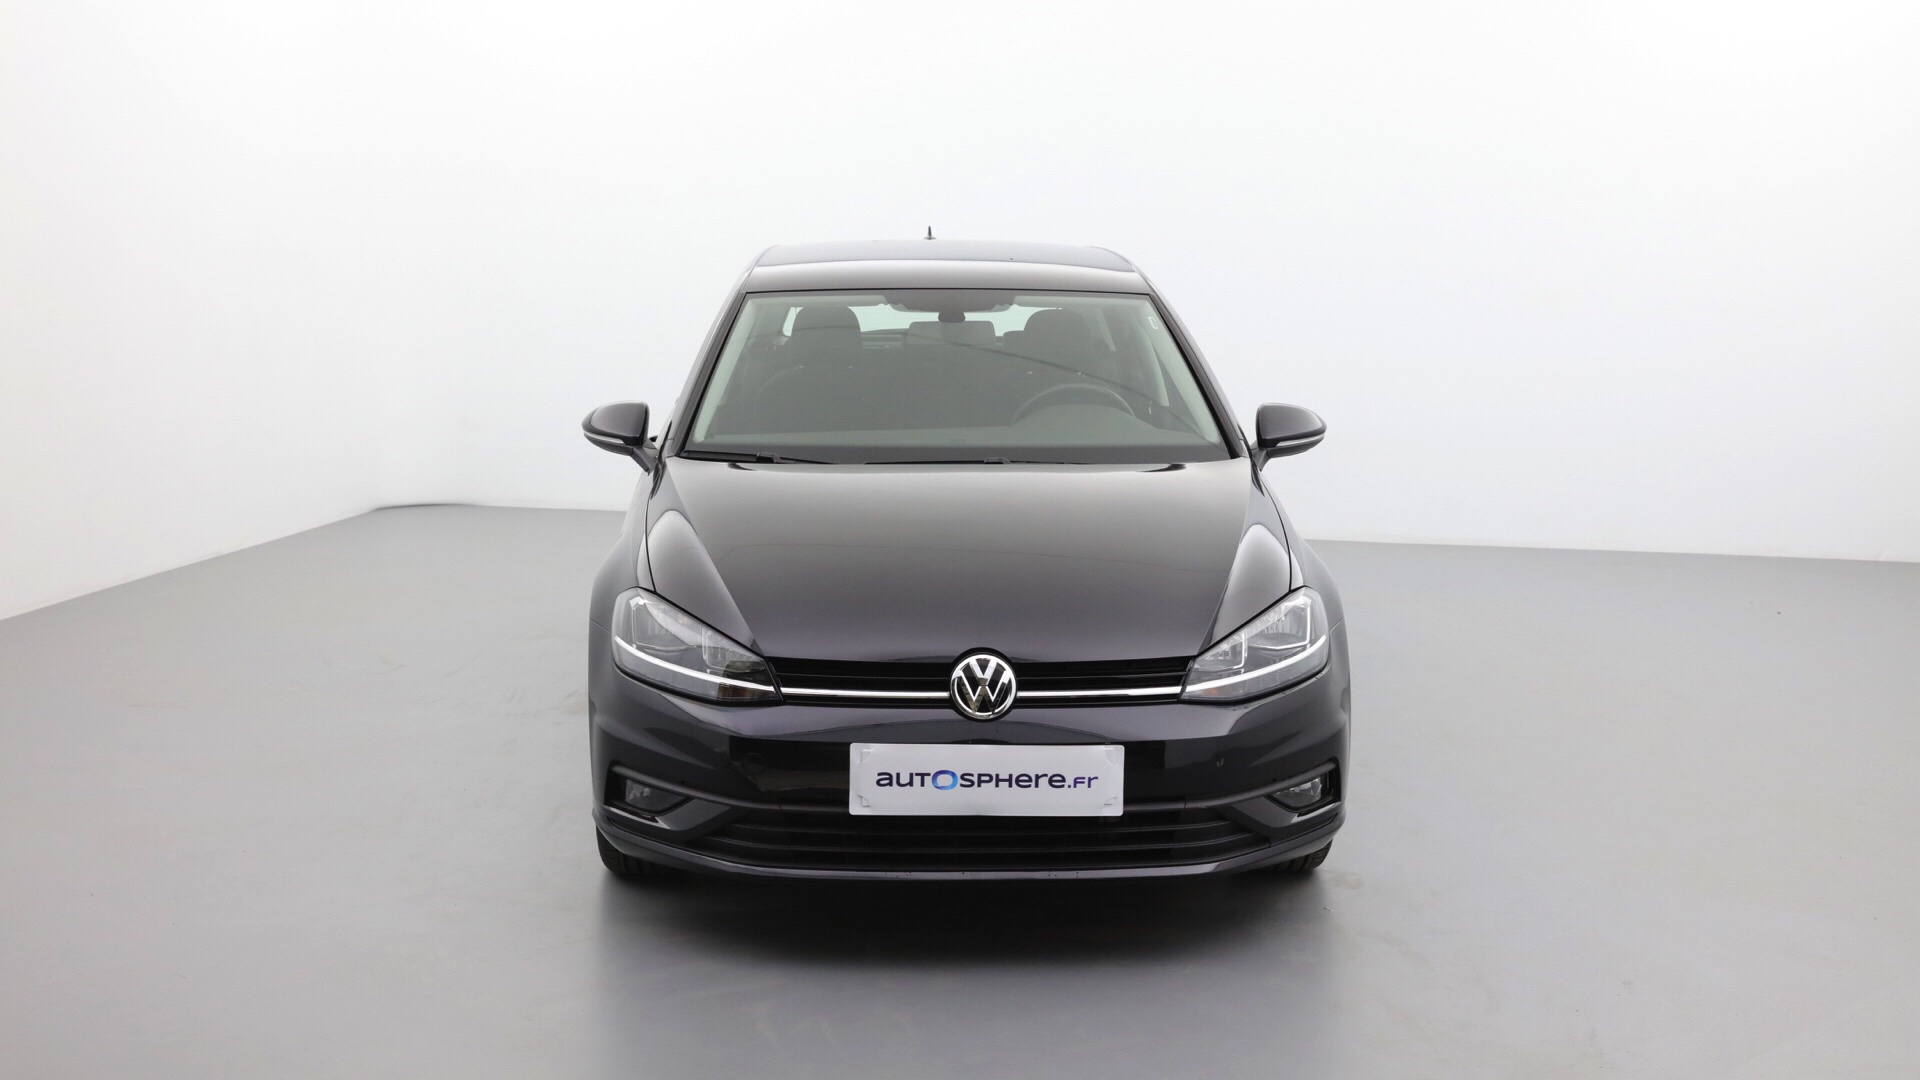 VOLKSWAGEN GOLF 1.6 TDI 115CH BLUEMOTION TECHNOLOGY FAP TRENDLINE BUSINESS 5P - Miniature 2